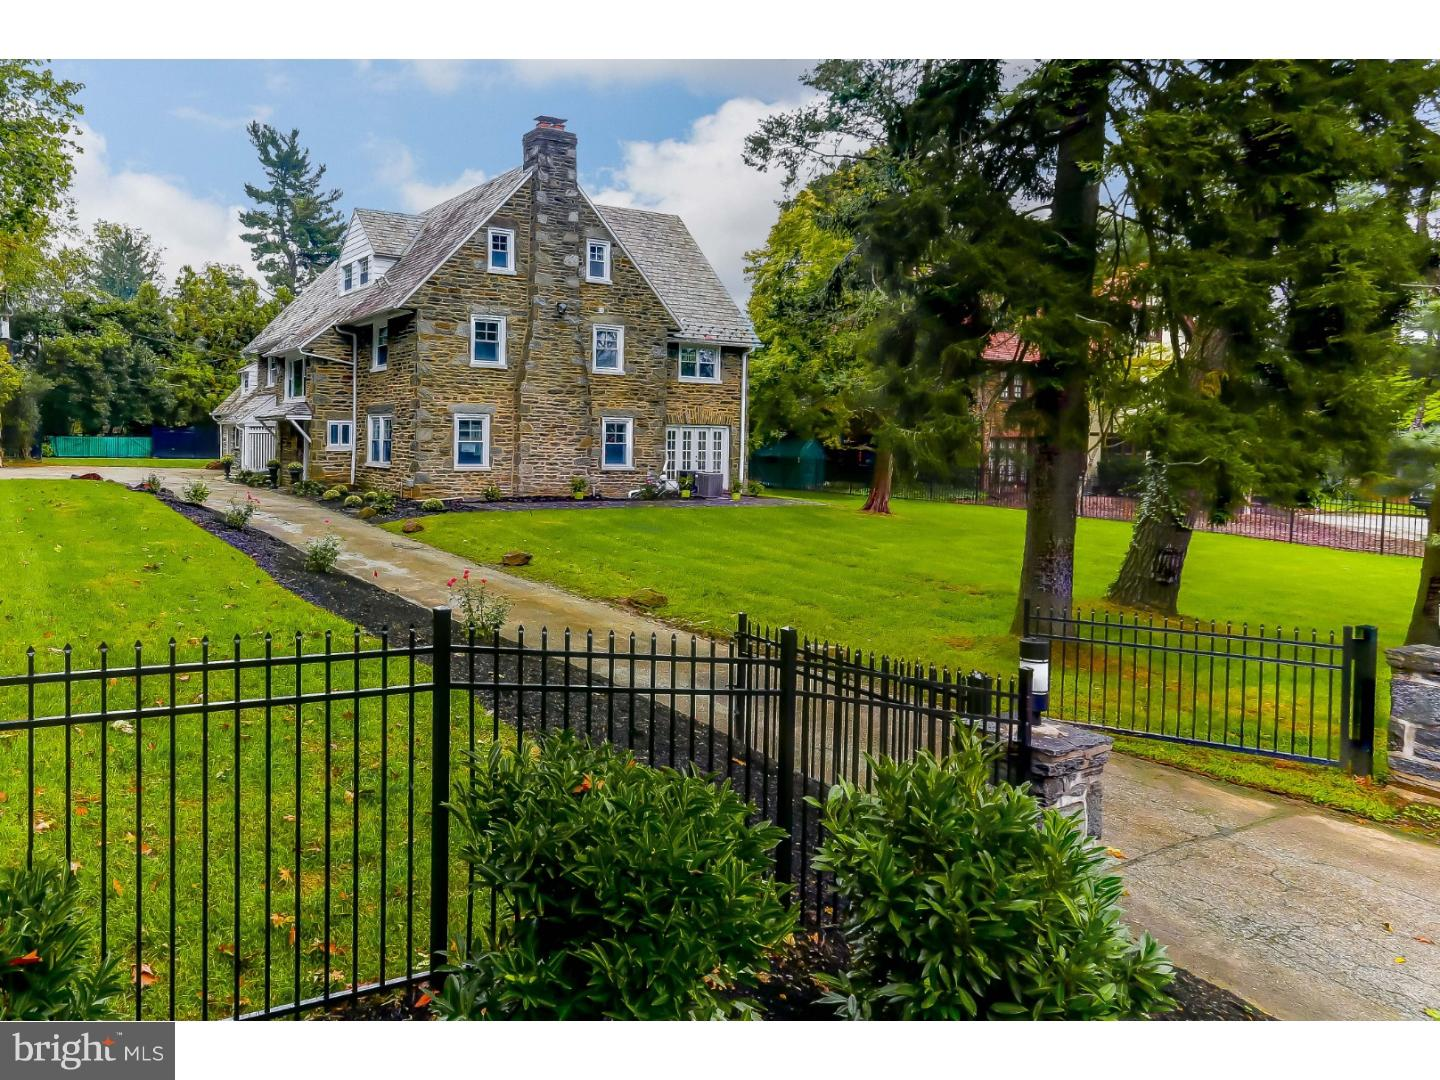 431 MONTGOMERY AVENUE, MERION STATION, PA 19066